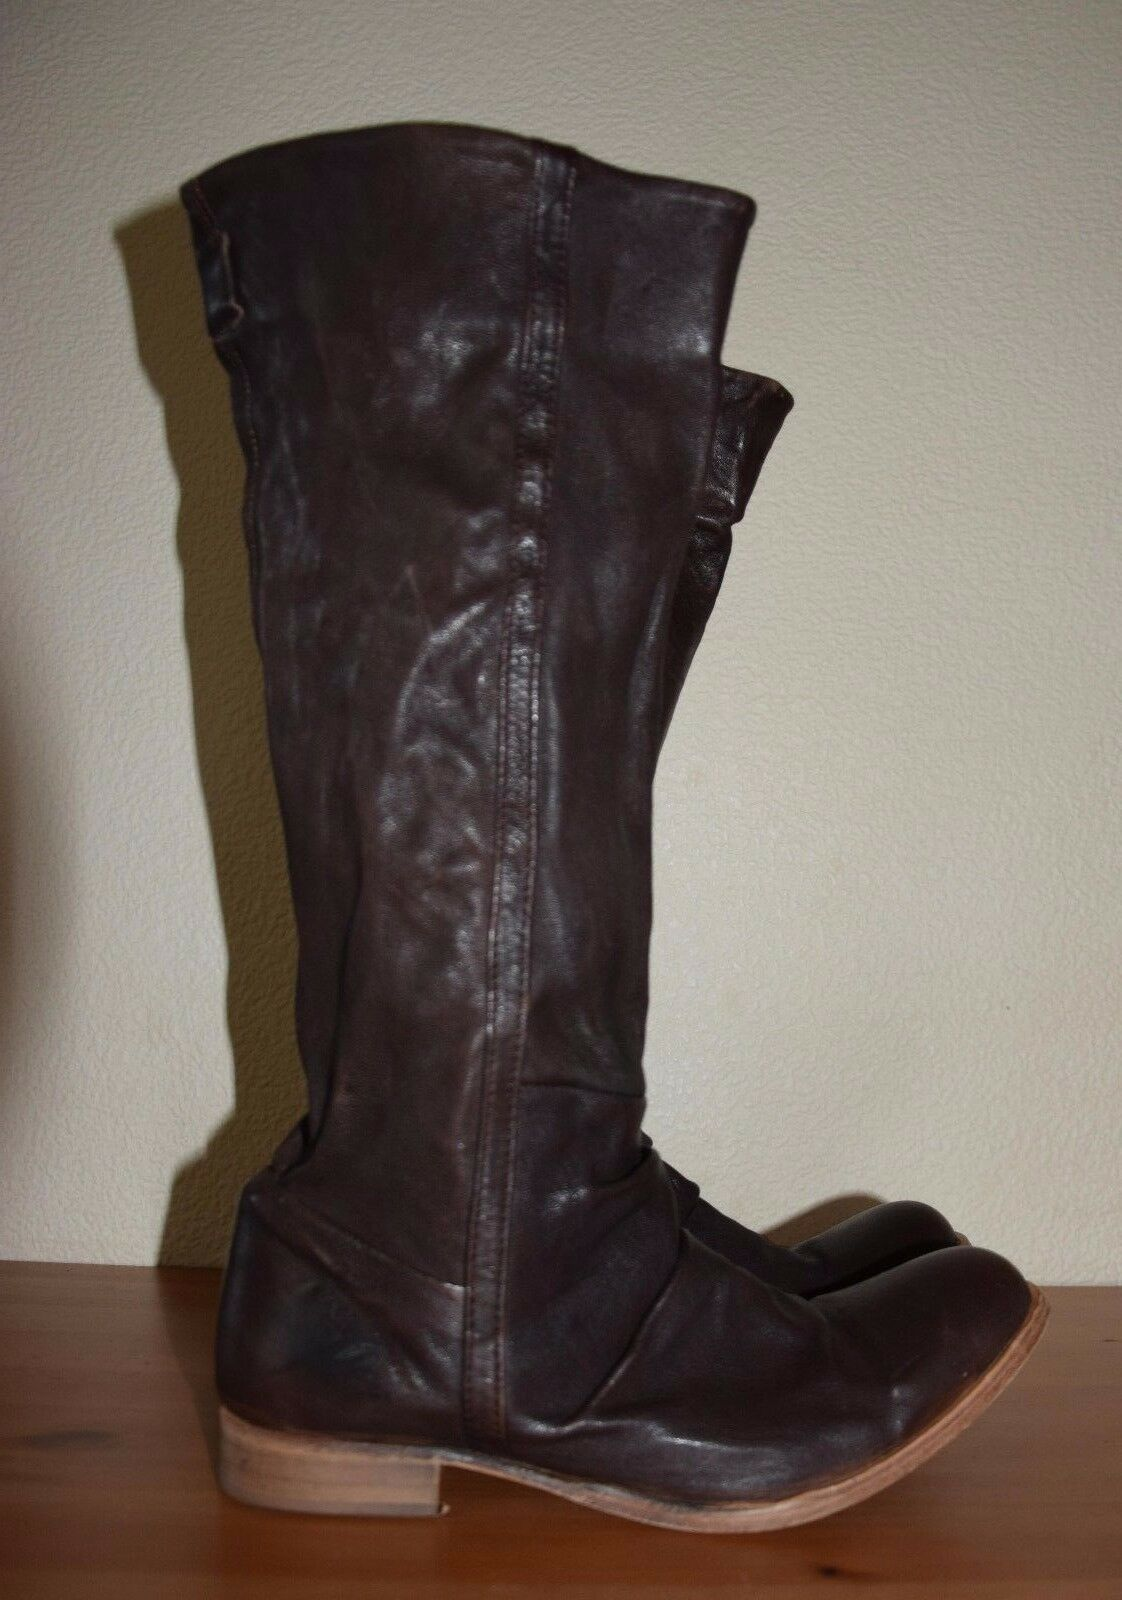 H By Hudson Dark Brown Knee High Leather Leather Leather Boots Size 41  UK 8 e6baea